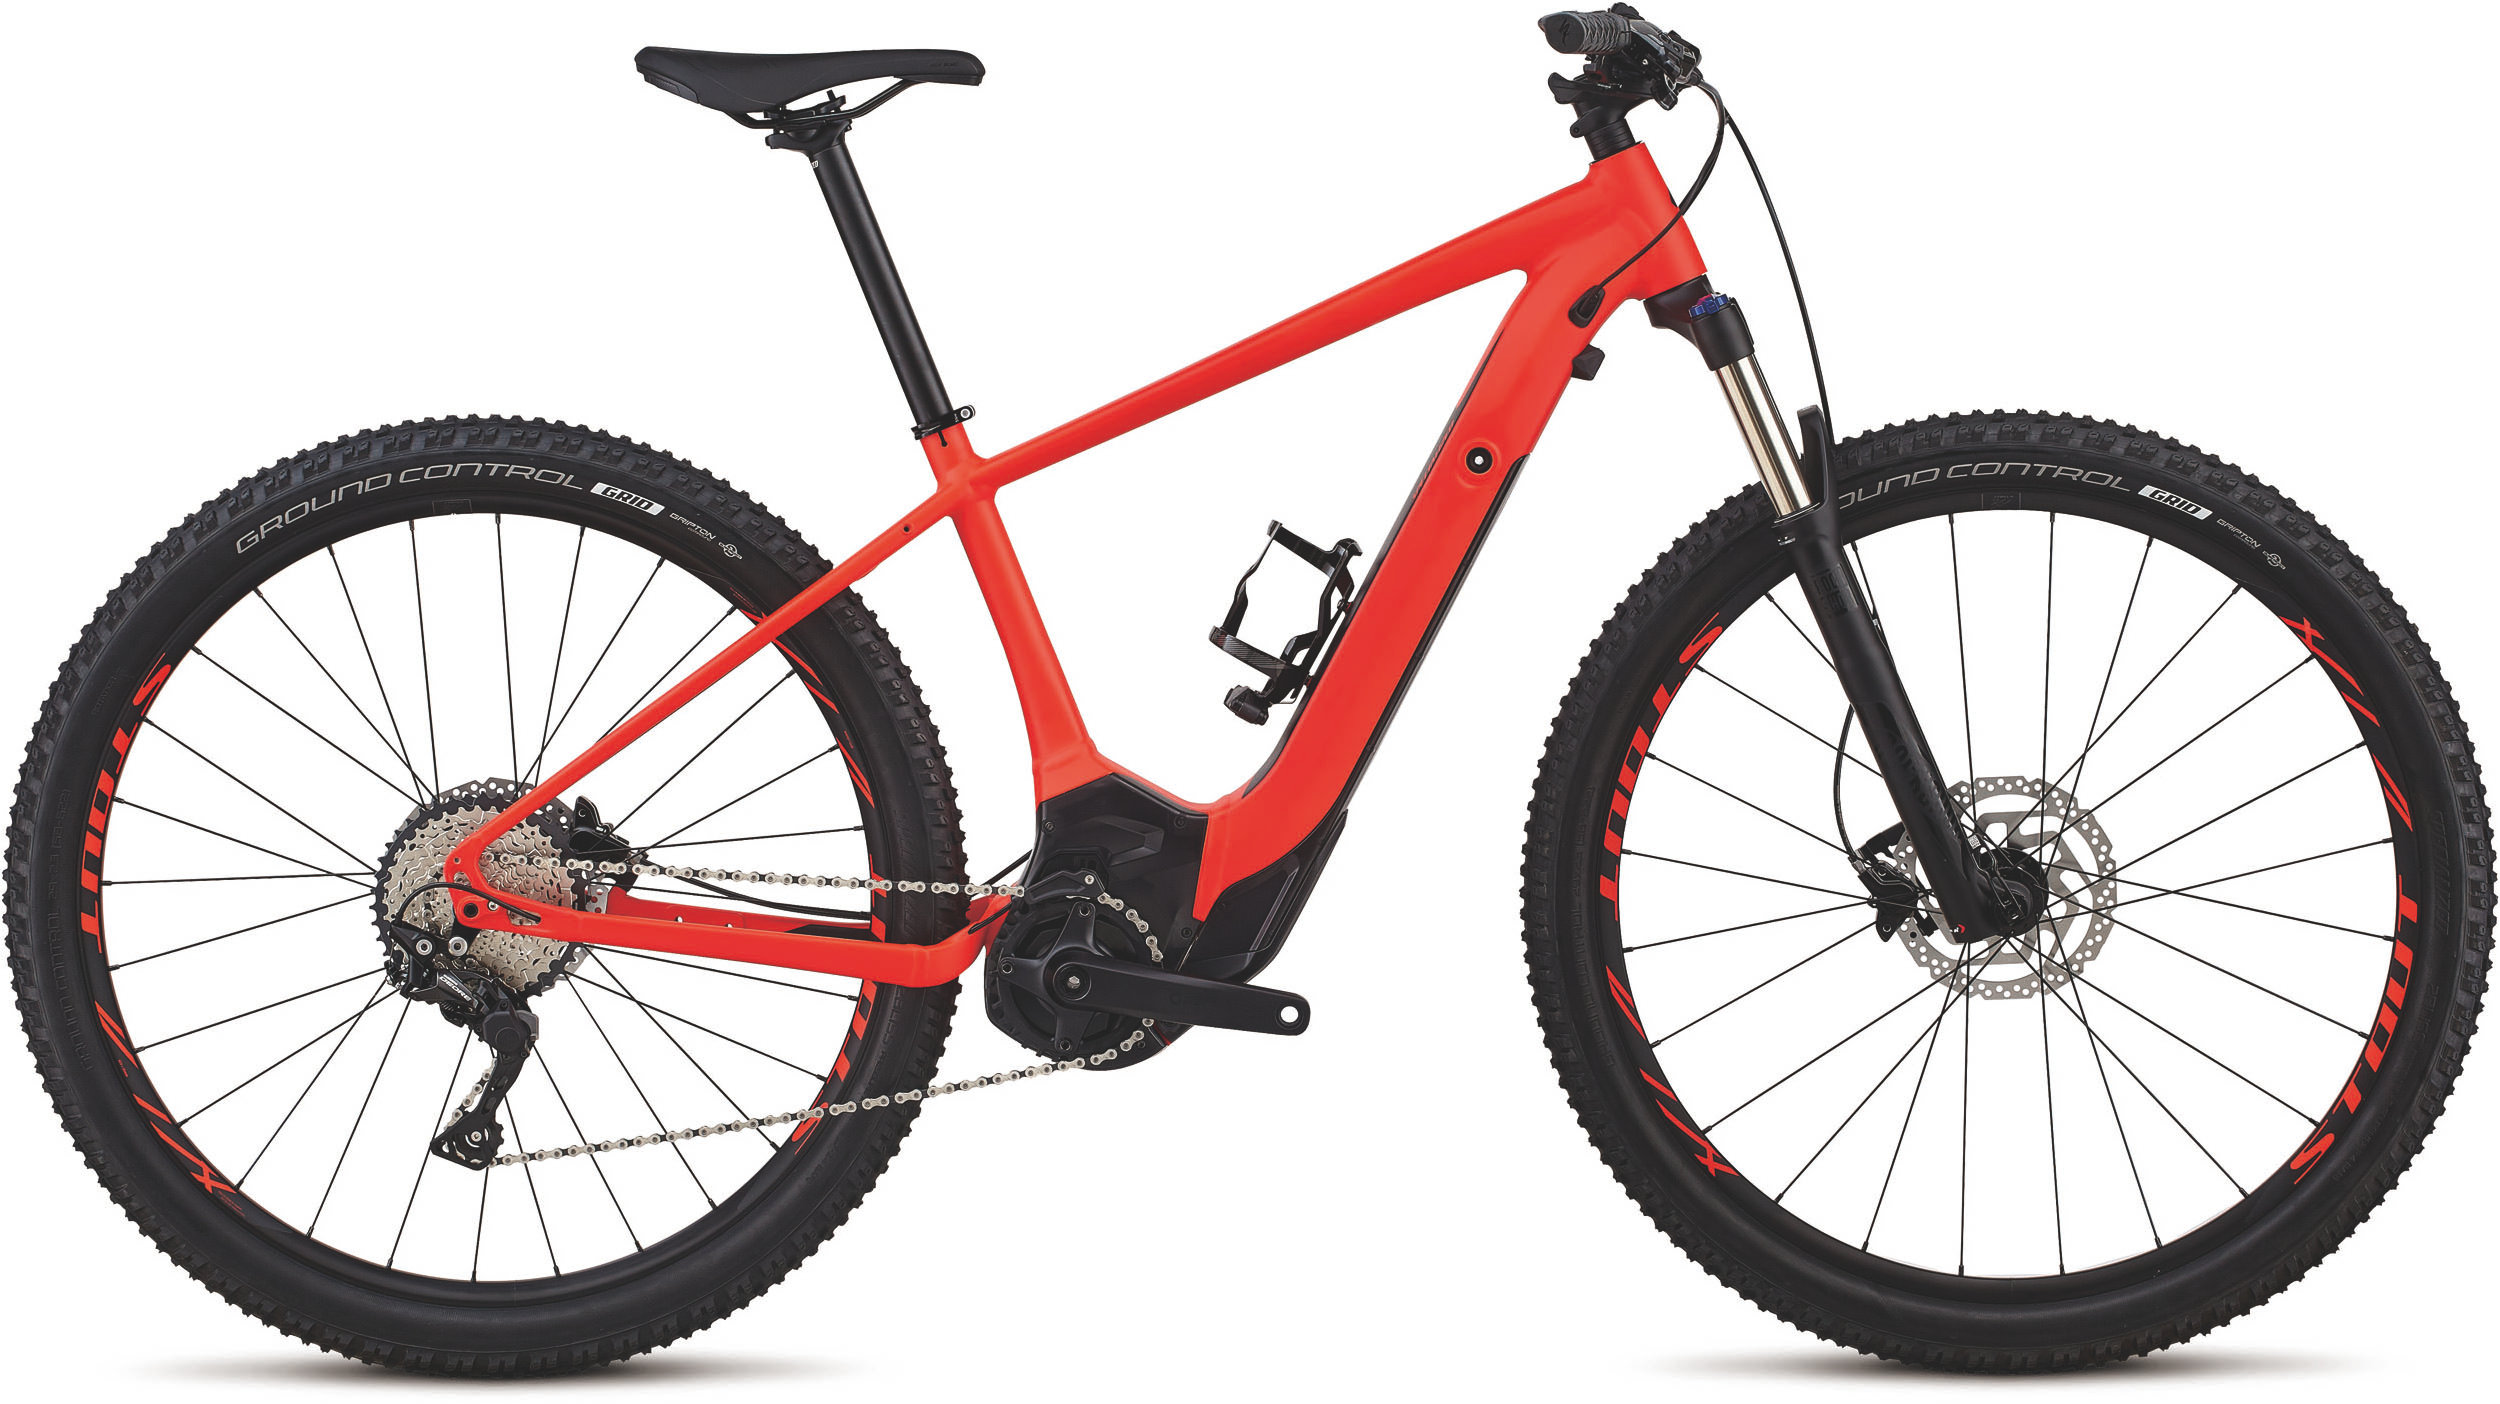 Specialized Men´s Turbo Levo Hardtail 29 Rocket Red / Black S - Bike Maniac